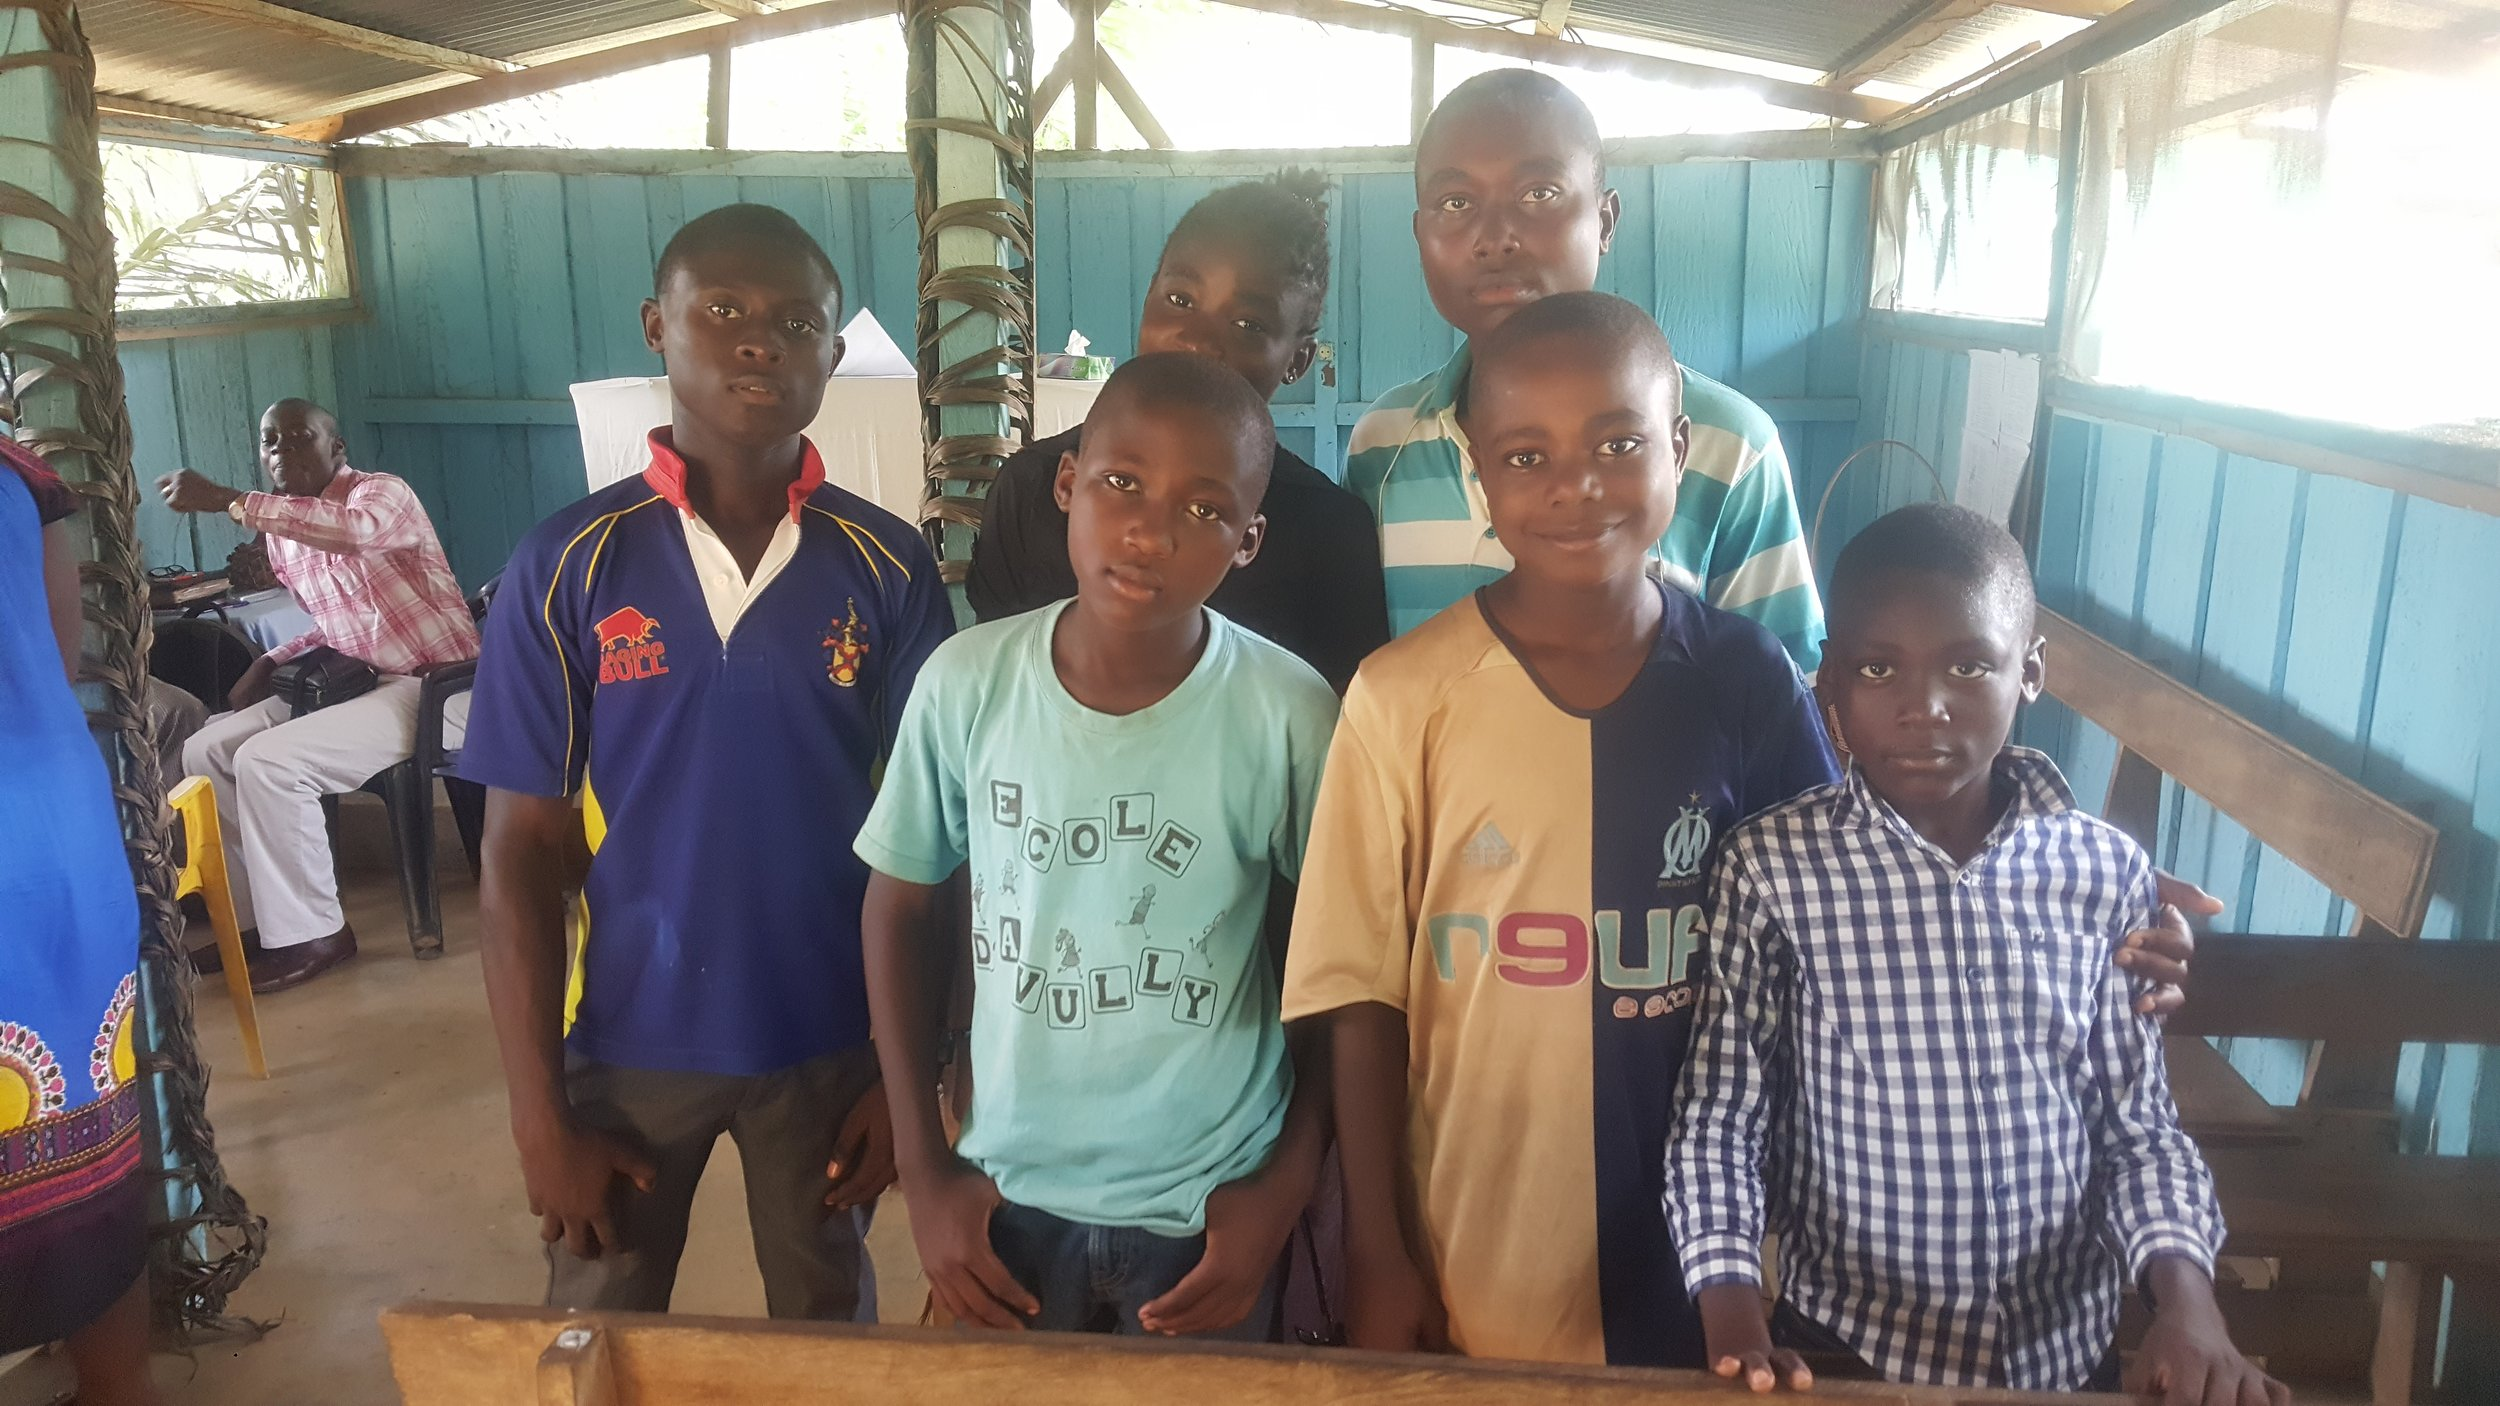 Kids from the village church in Lebamba